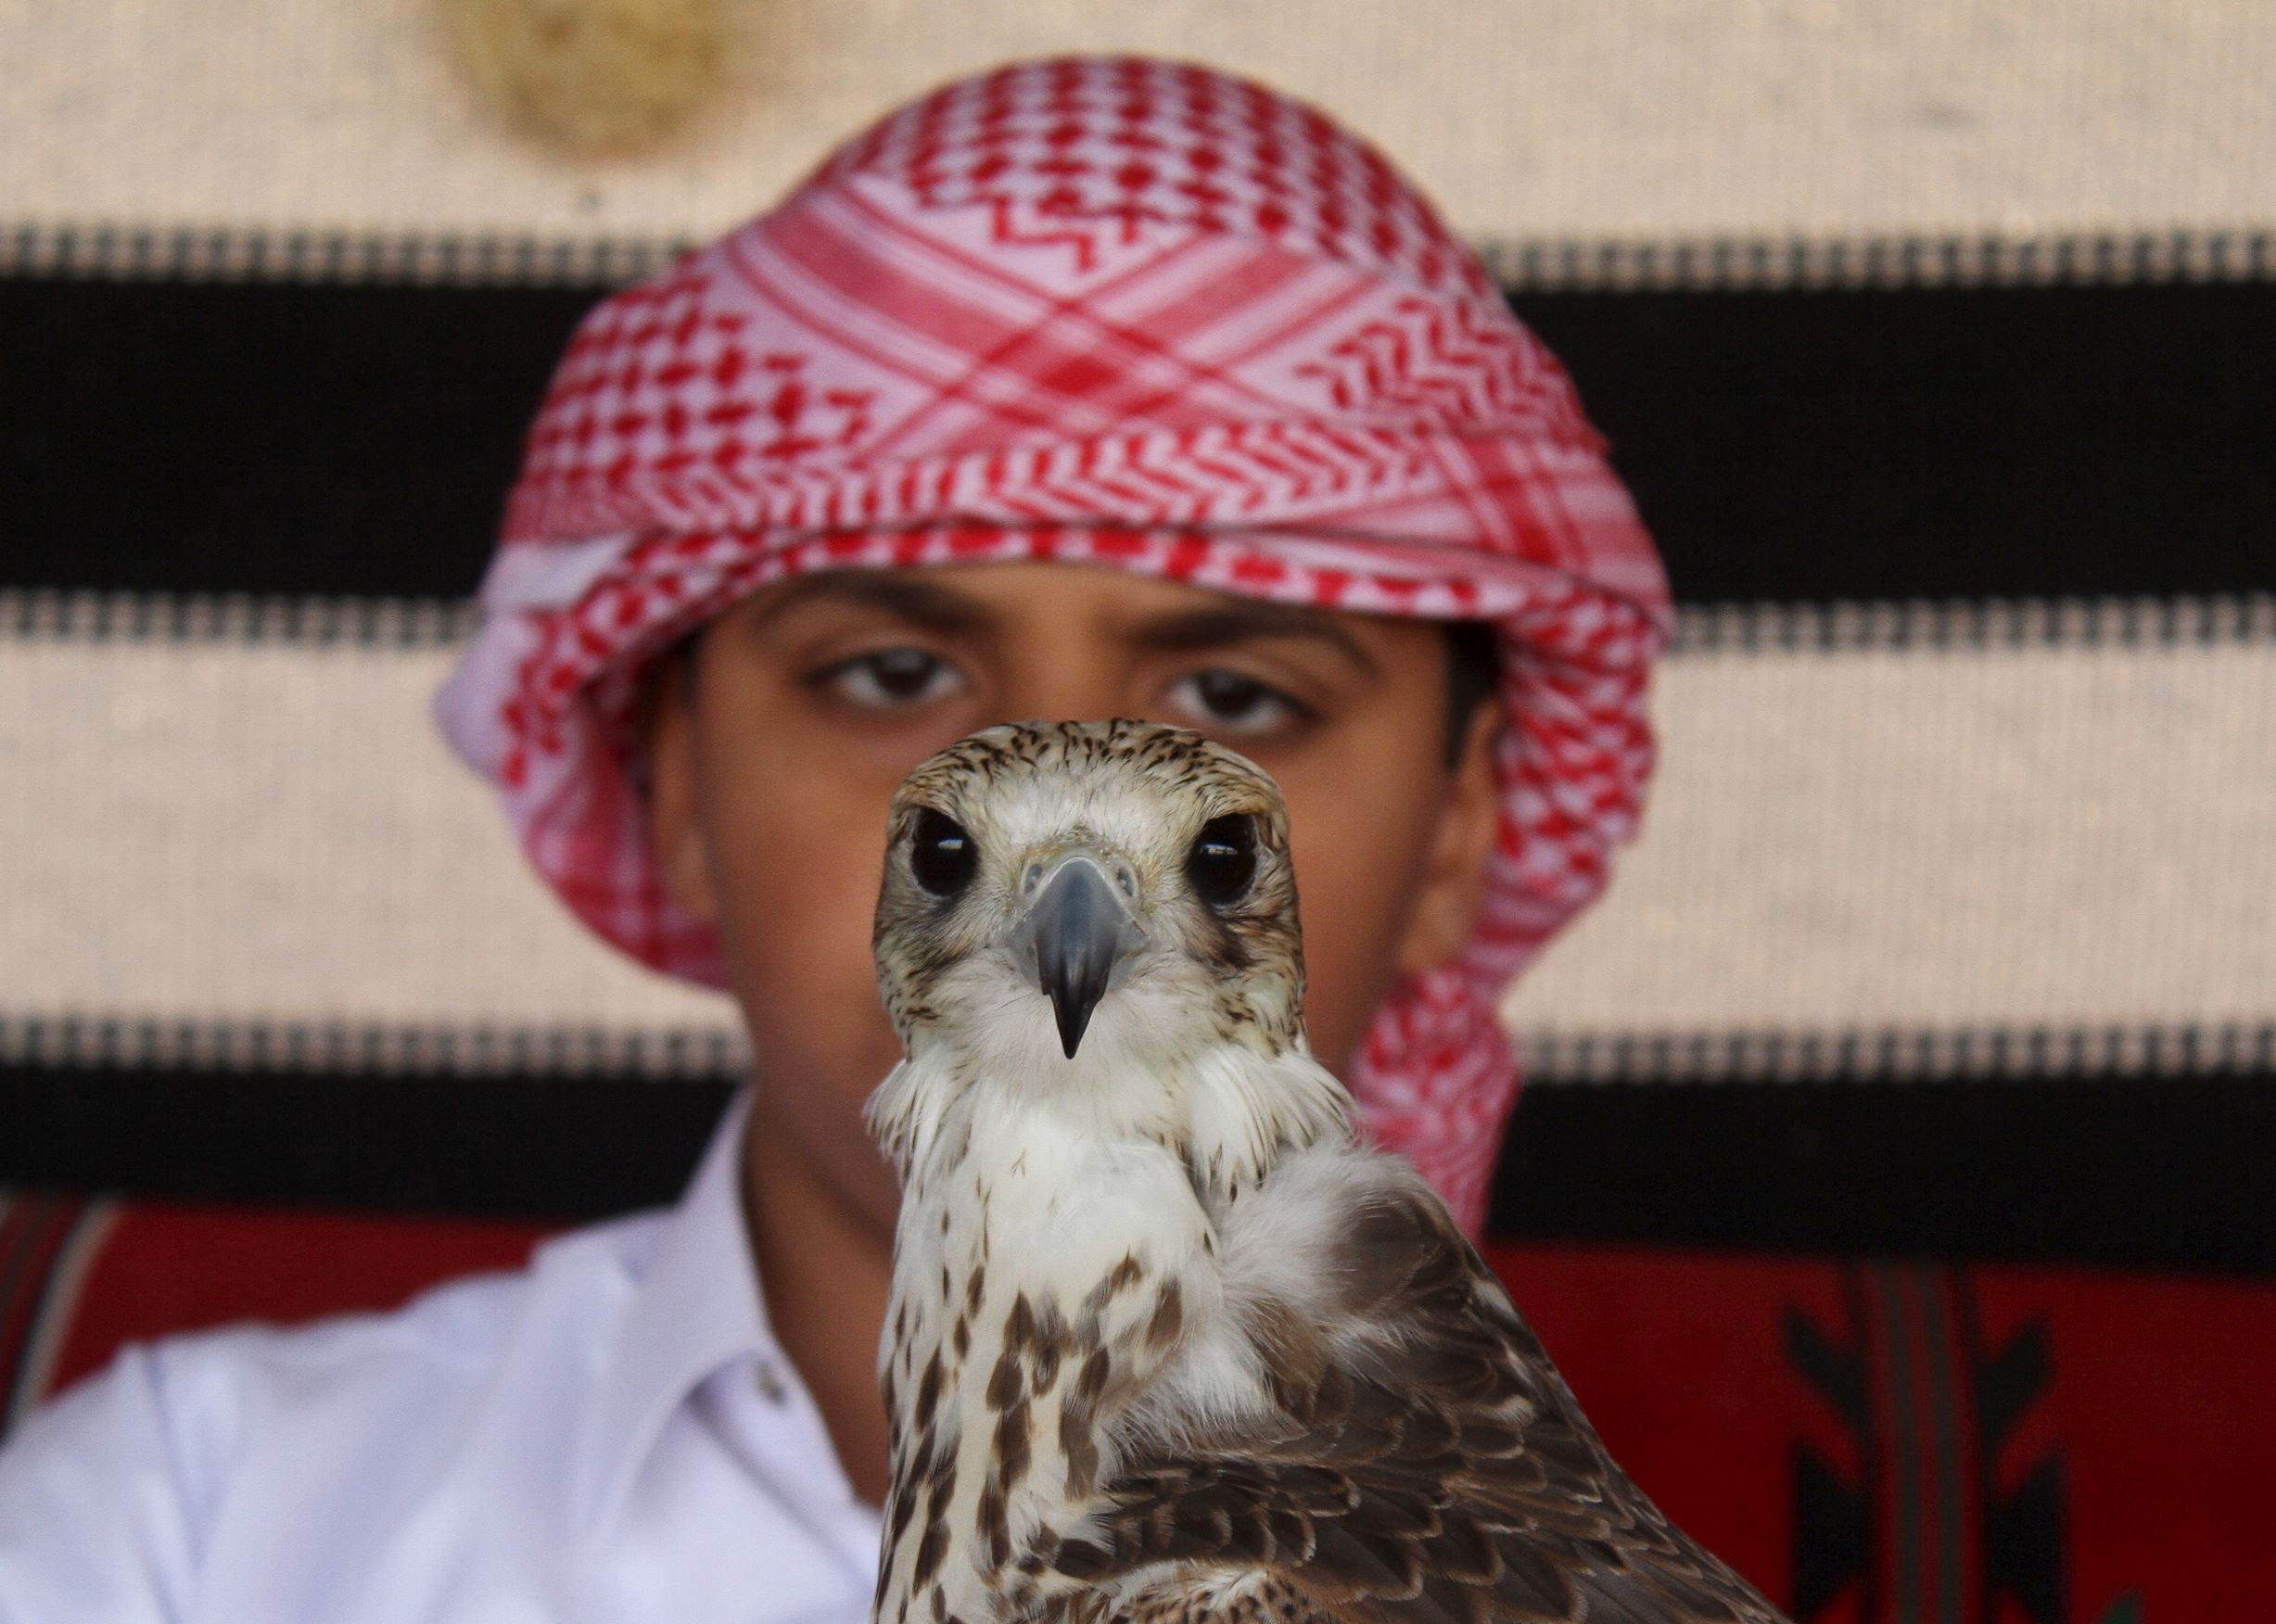 "Слайд 63 из 67: A boy holds a falcon during Qatar International Falcons and Hunting Festival at Sealine desert, Qatar January 29, 2016. The participants at the contest compete for the fastest falcon at attacking its prey. Scores of wealthy Gulf Arabs descend on Iraq to hunt the houbara bustard, a rare desert bird, with trained falcons through the winter months. But the kidnapping of 26 Qataris in December 2015 in the Iraqi desert while hunting, including members of the country's royal family, has highlighted the risks of pursuing the ""sport of kings"" at a time of heightened regional turmoil. Picture taken January 29, 2016."